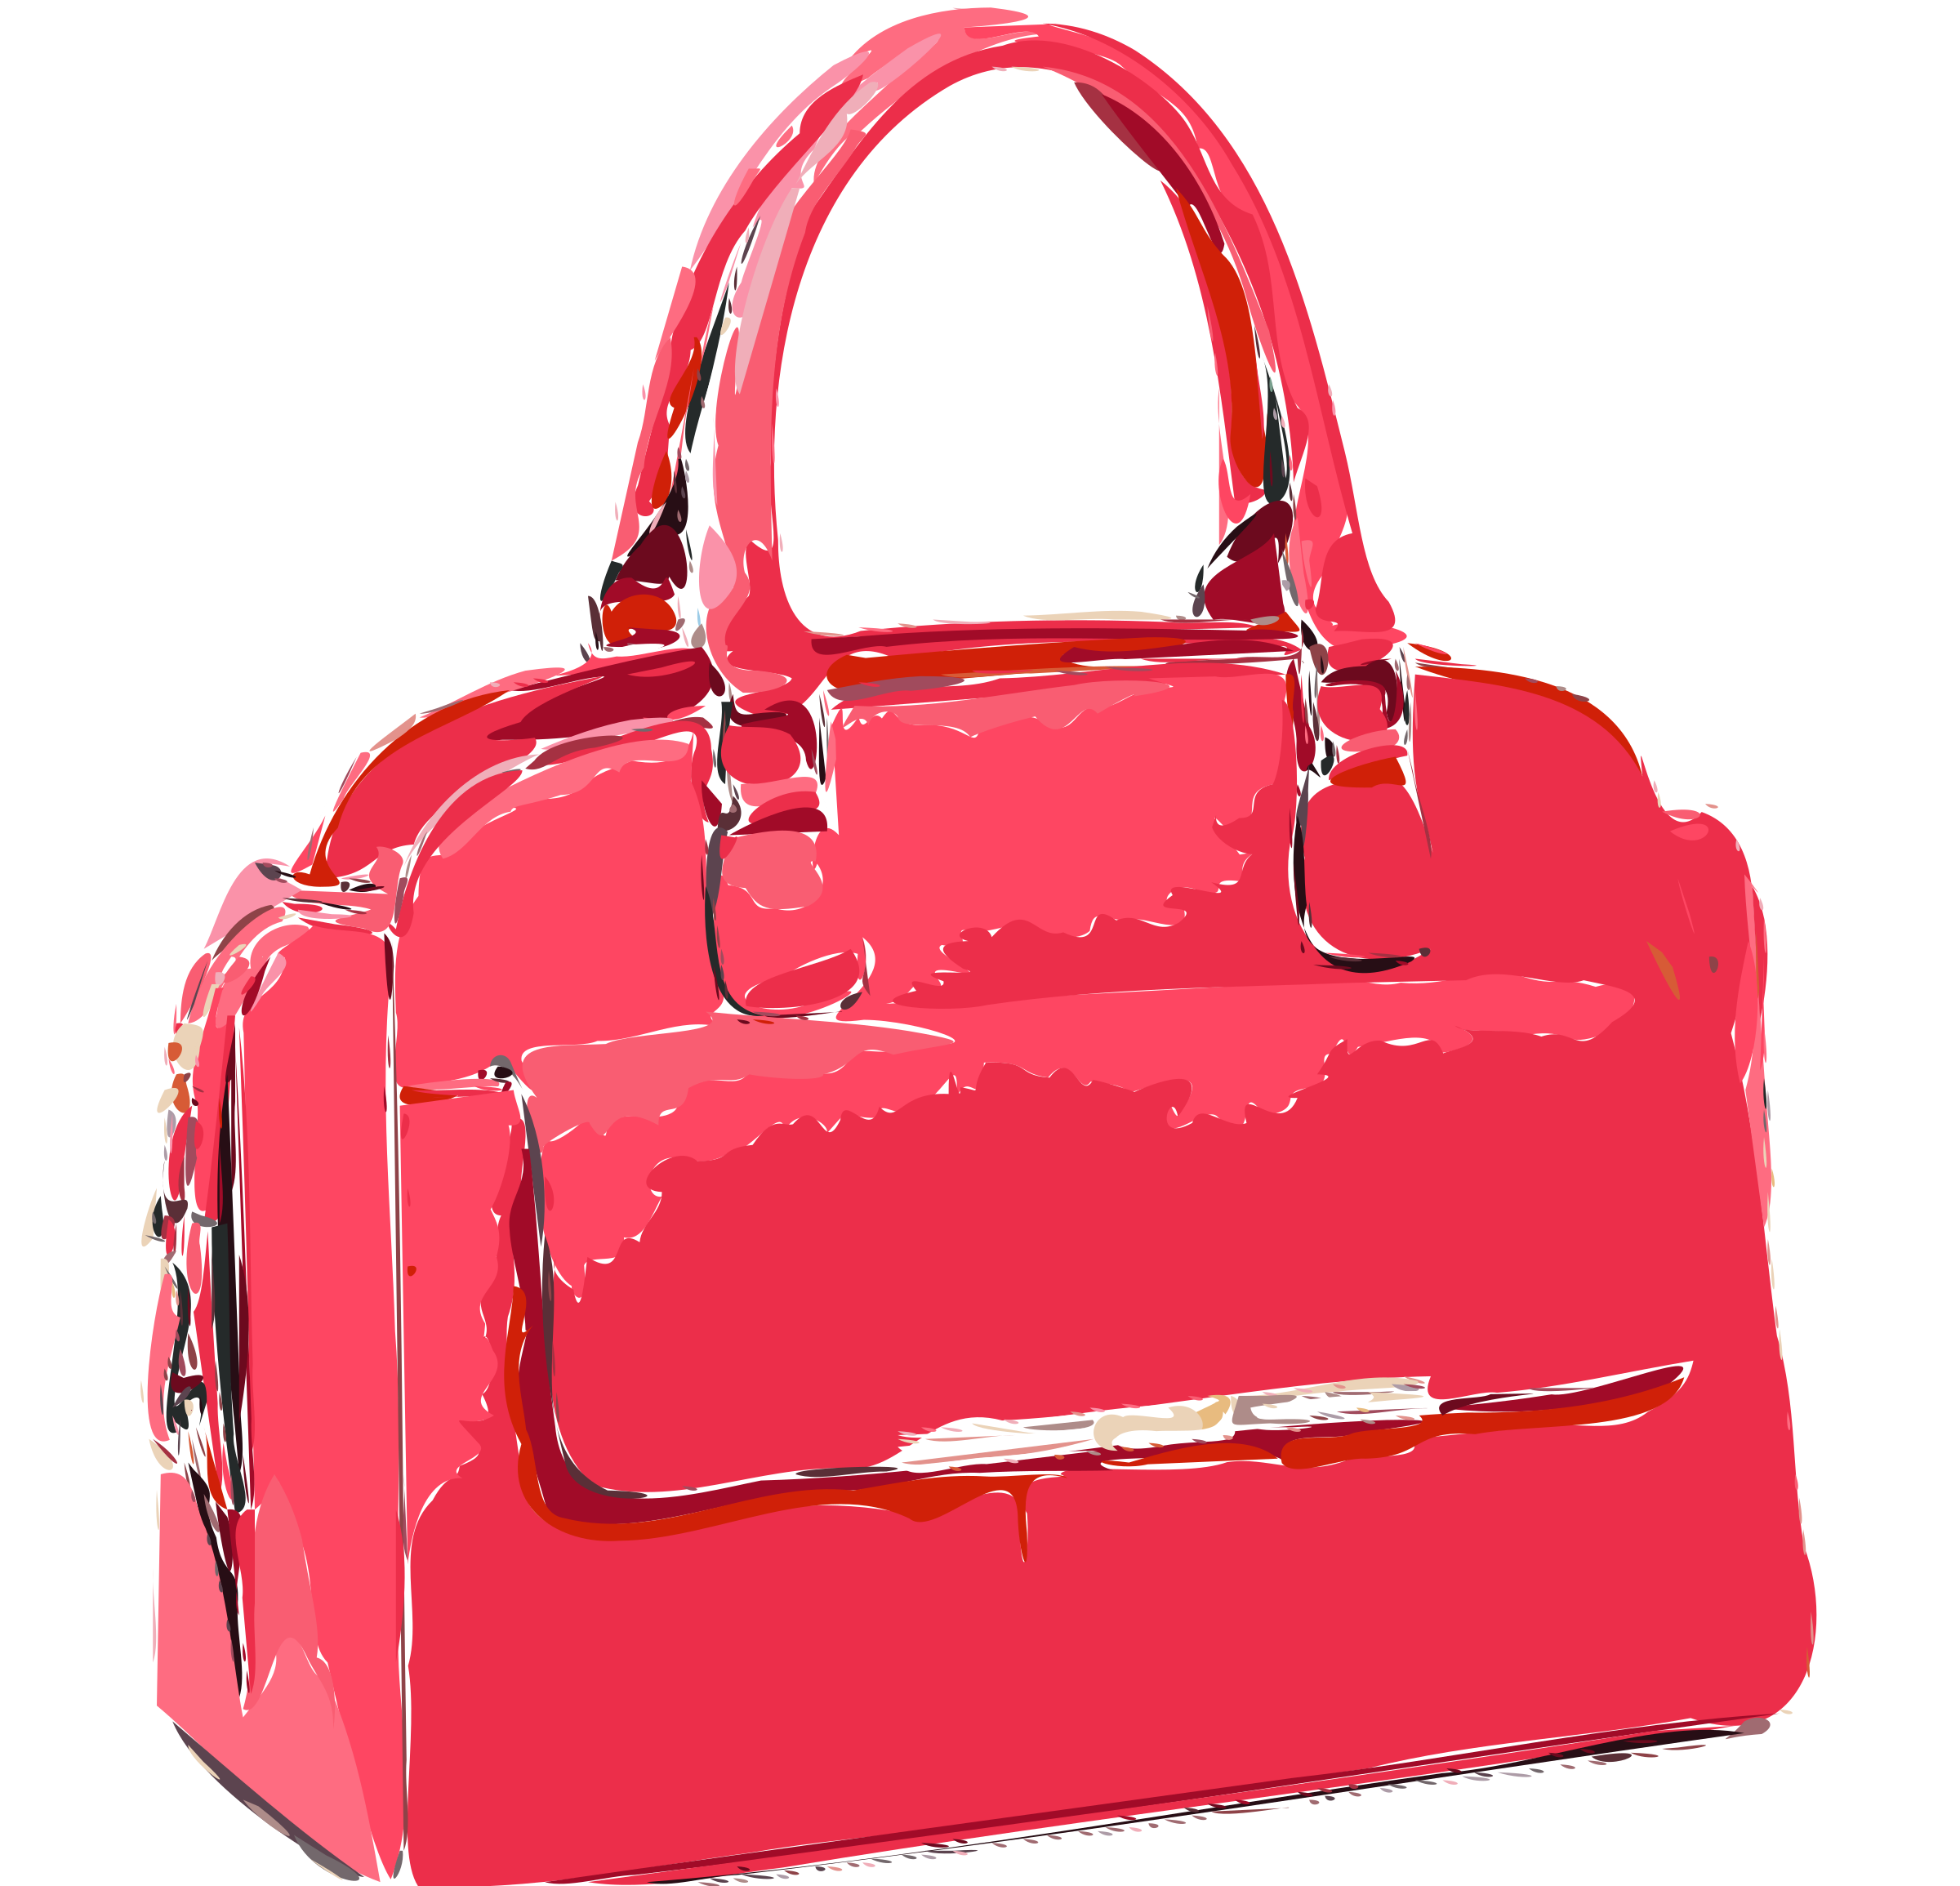 Bright Pink Bag by rejon